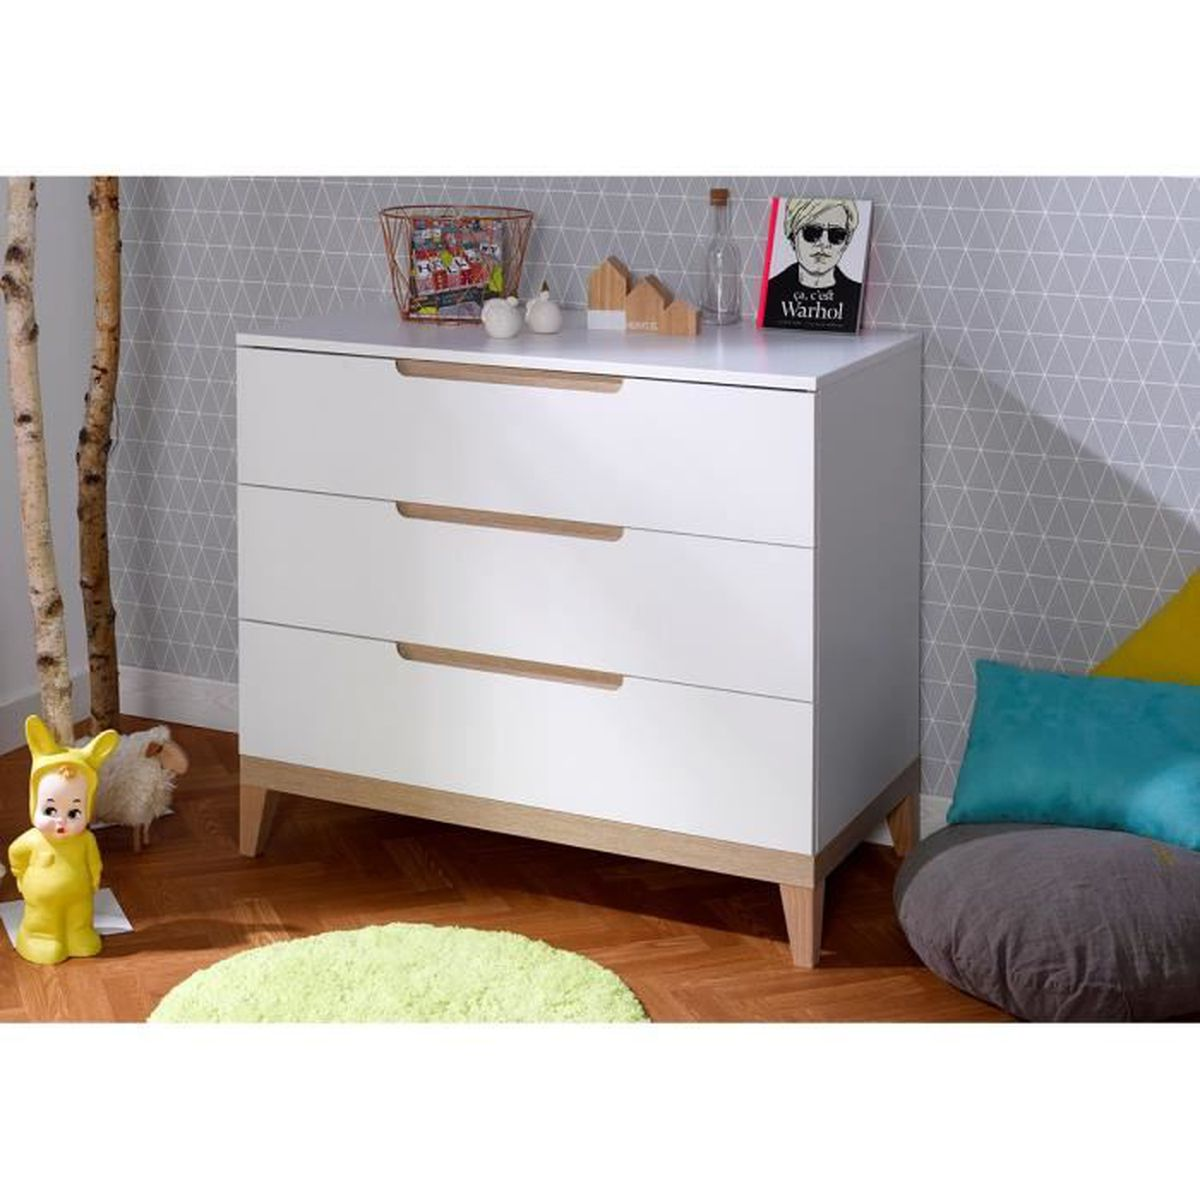 Stunning petite chambre bebe contemporary amazing house for Chambre bebe petite piece